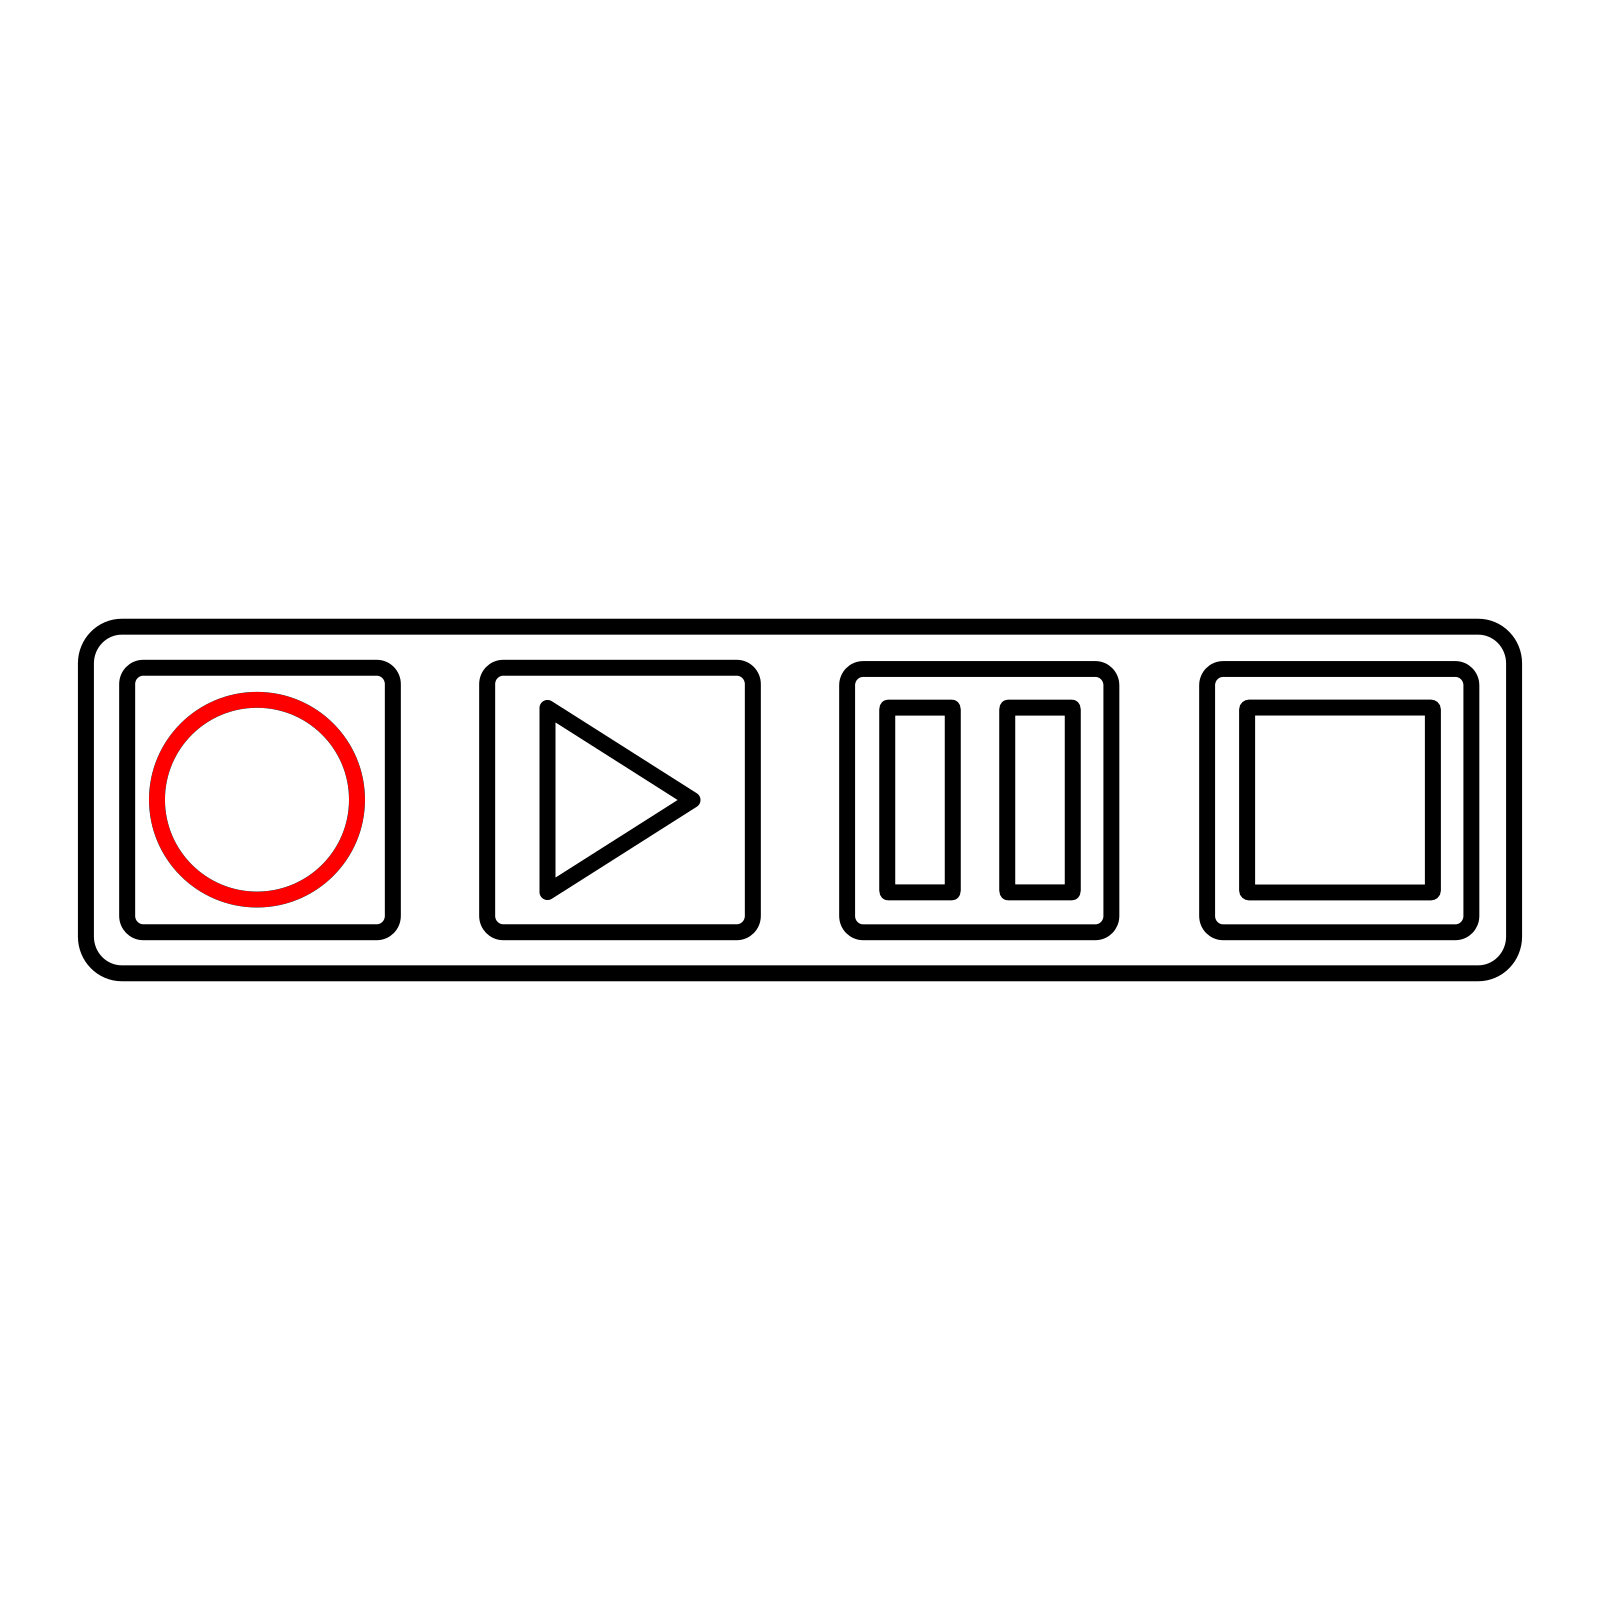 Tape Deck Control Buttons Outline Clip Art Icon And Svg